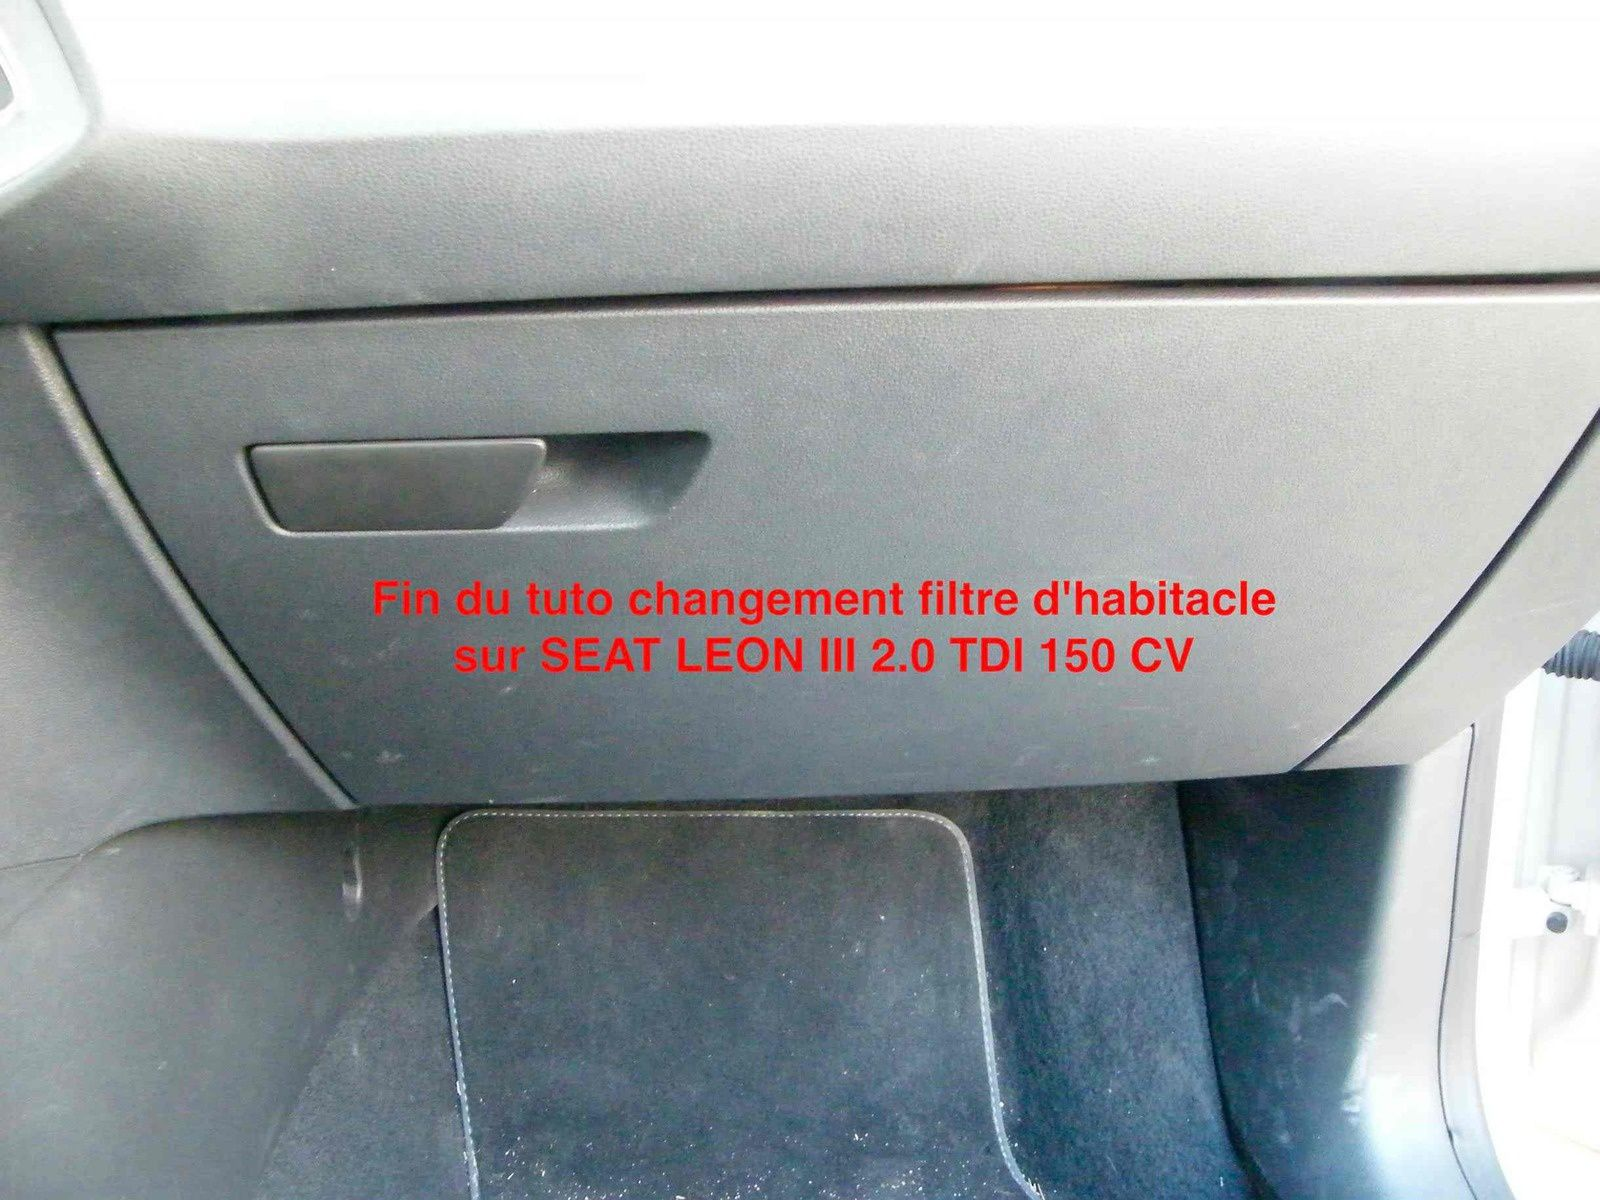 changement filtre d 39 habitacle seat leon 3 2 0 tdi 150 cv tutorialaudi. Black Bedroom Furniture Sets. Home Design Ideas